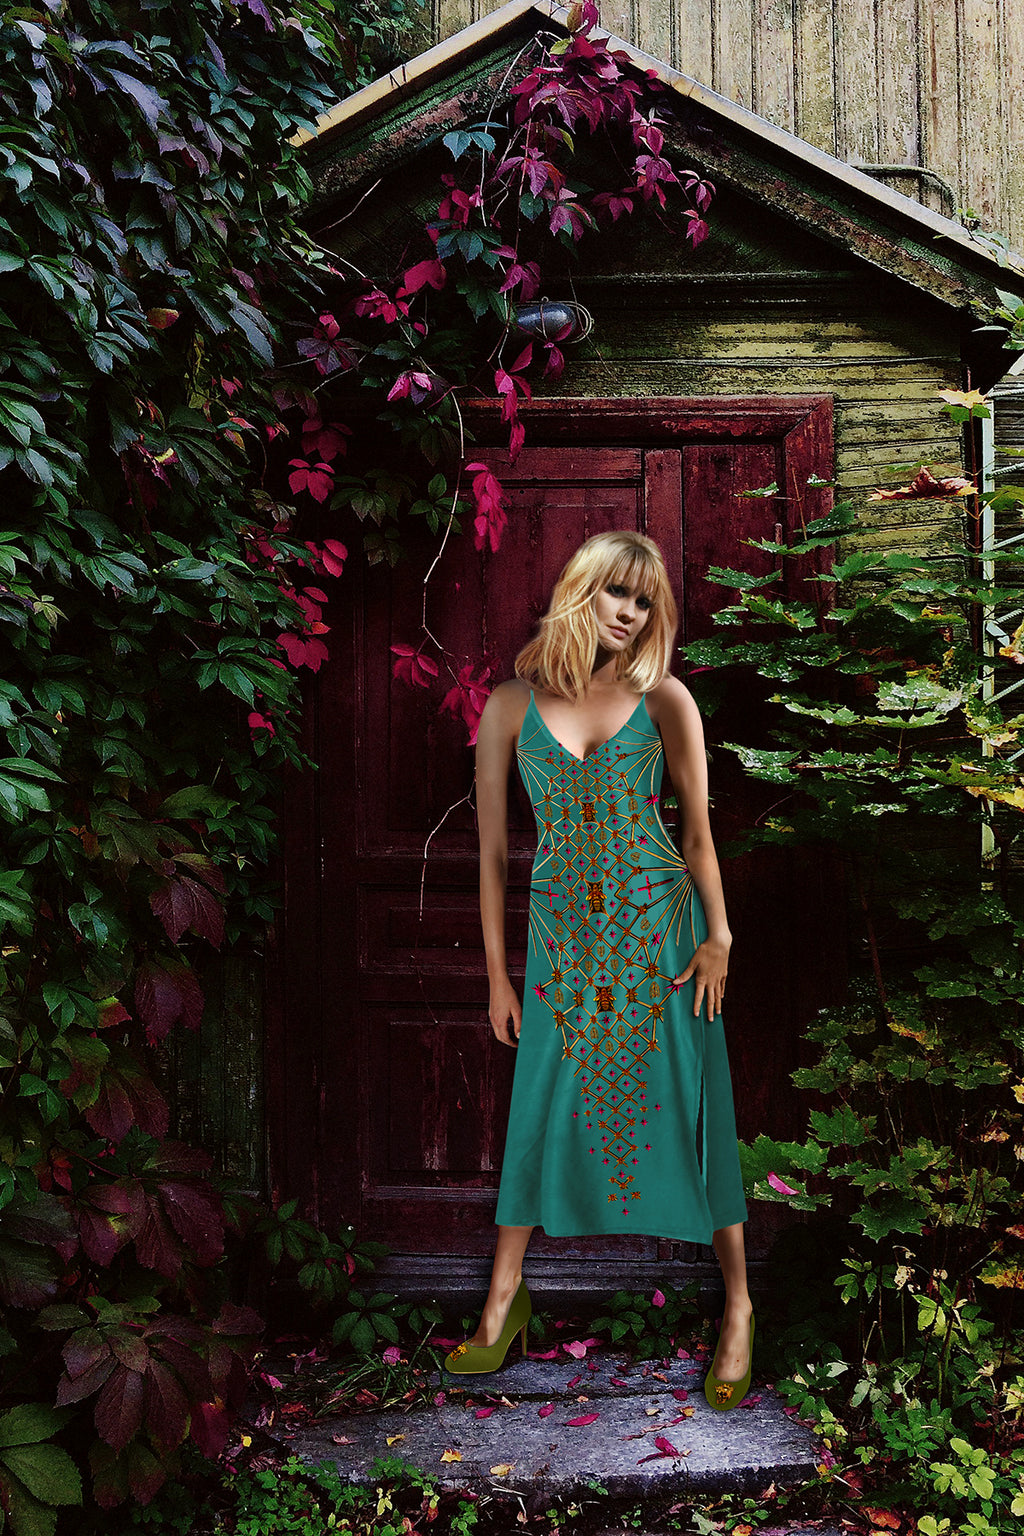 V Neck Slip Dress with Gilded Honey Bee Pattern- Gold Hive- Color-Jade Teal- Blue- Teal- Green